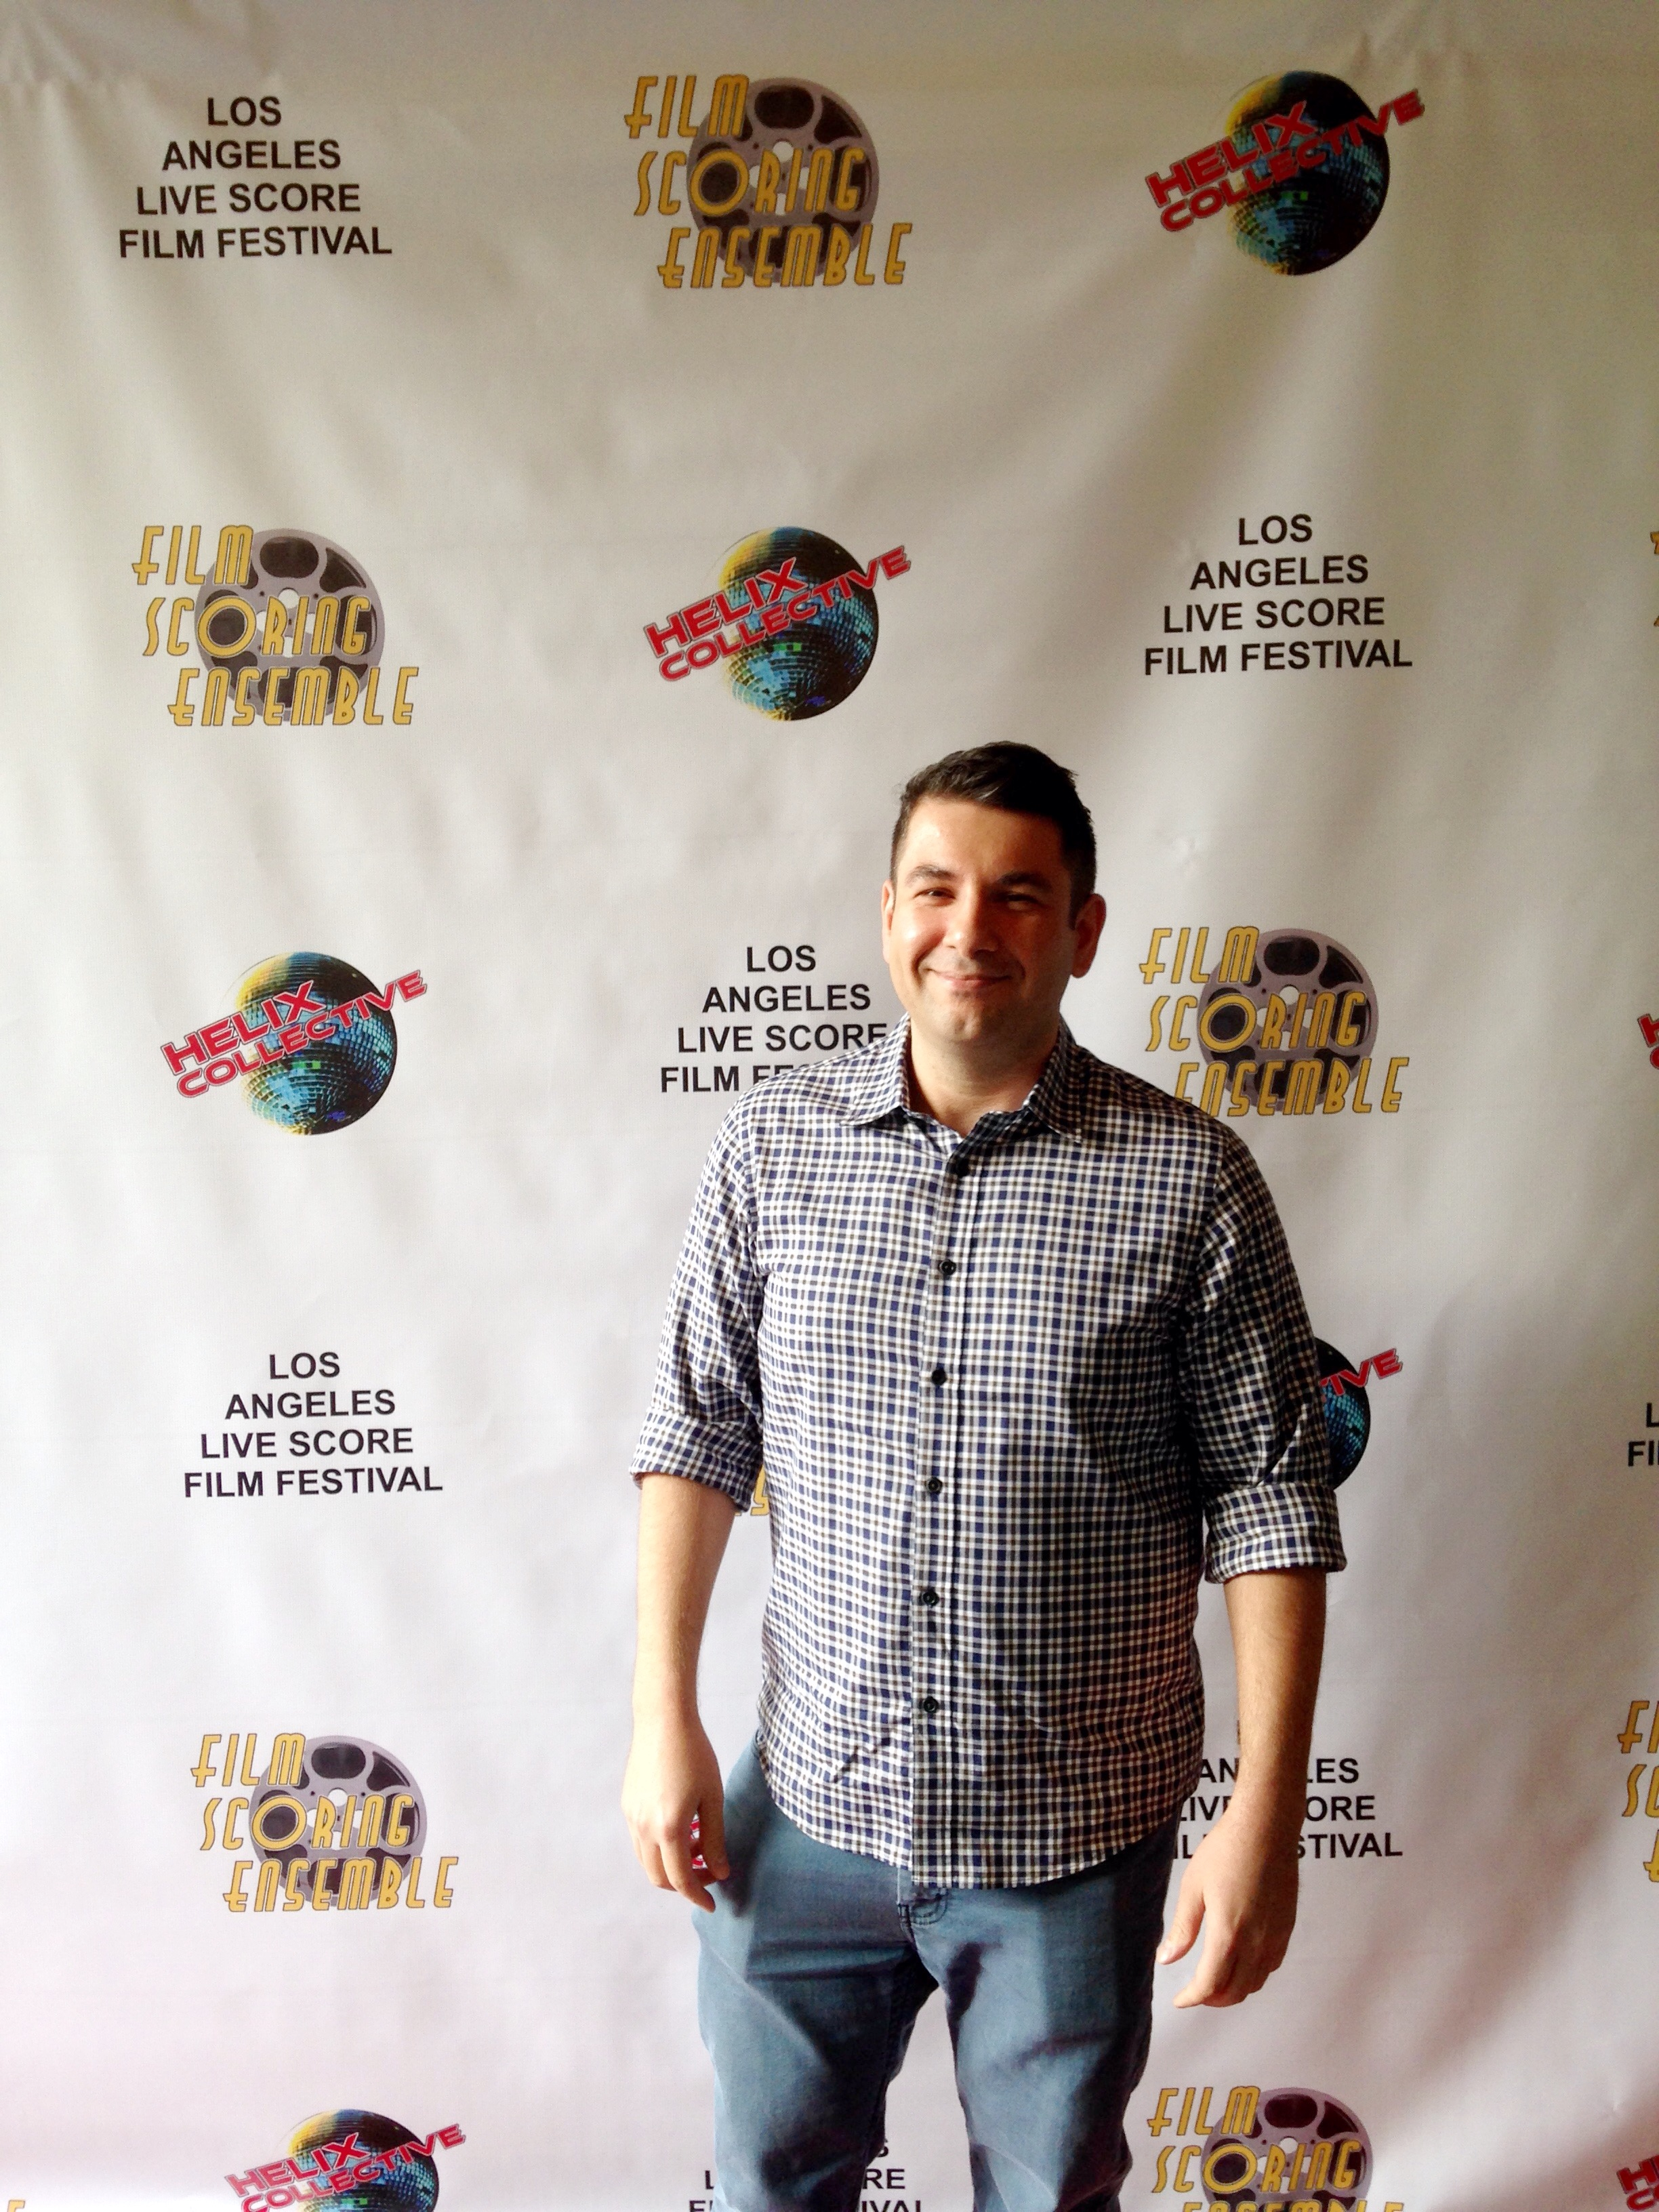 A little picture on the Red carpet before the 8pm premiere at ArtShare LA on April 30, 2016.